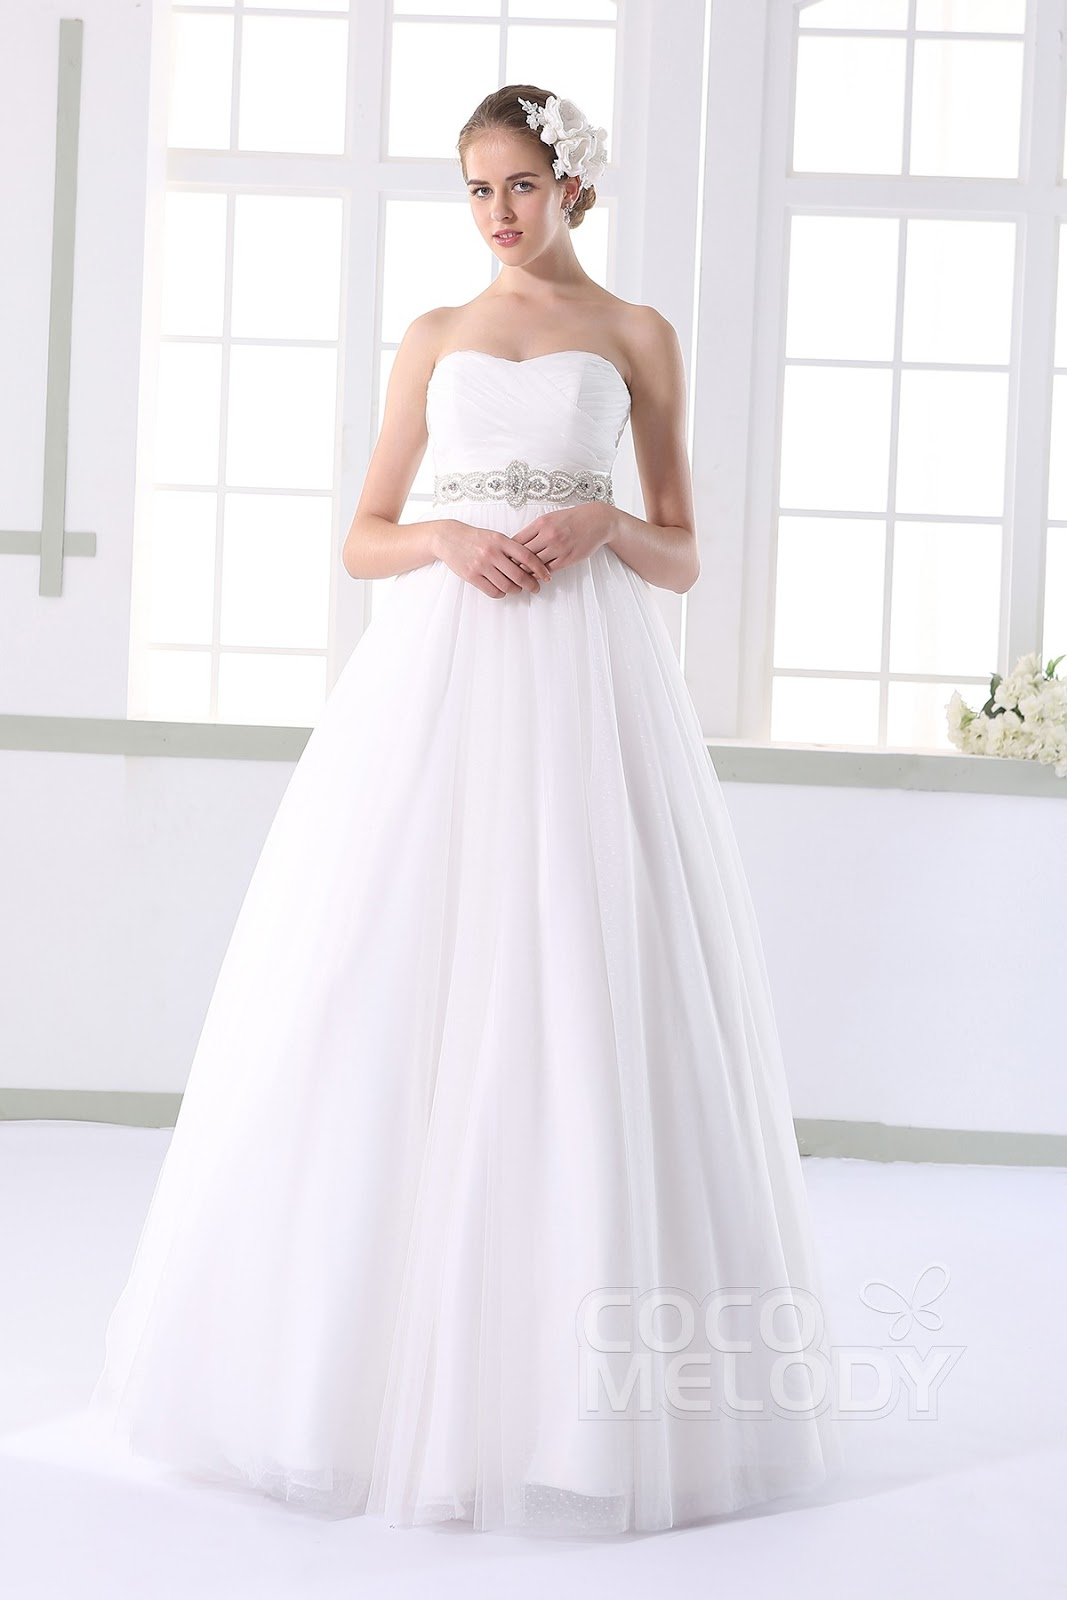 beautiful and elegant wedding dress: Marriage Gowns Ideal for Fat ...